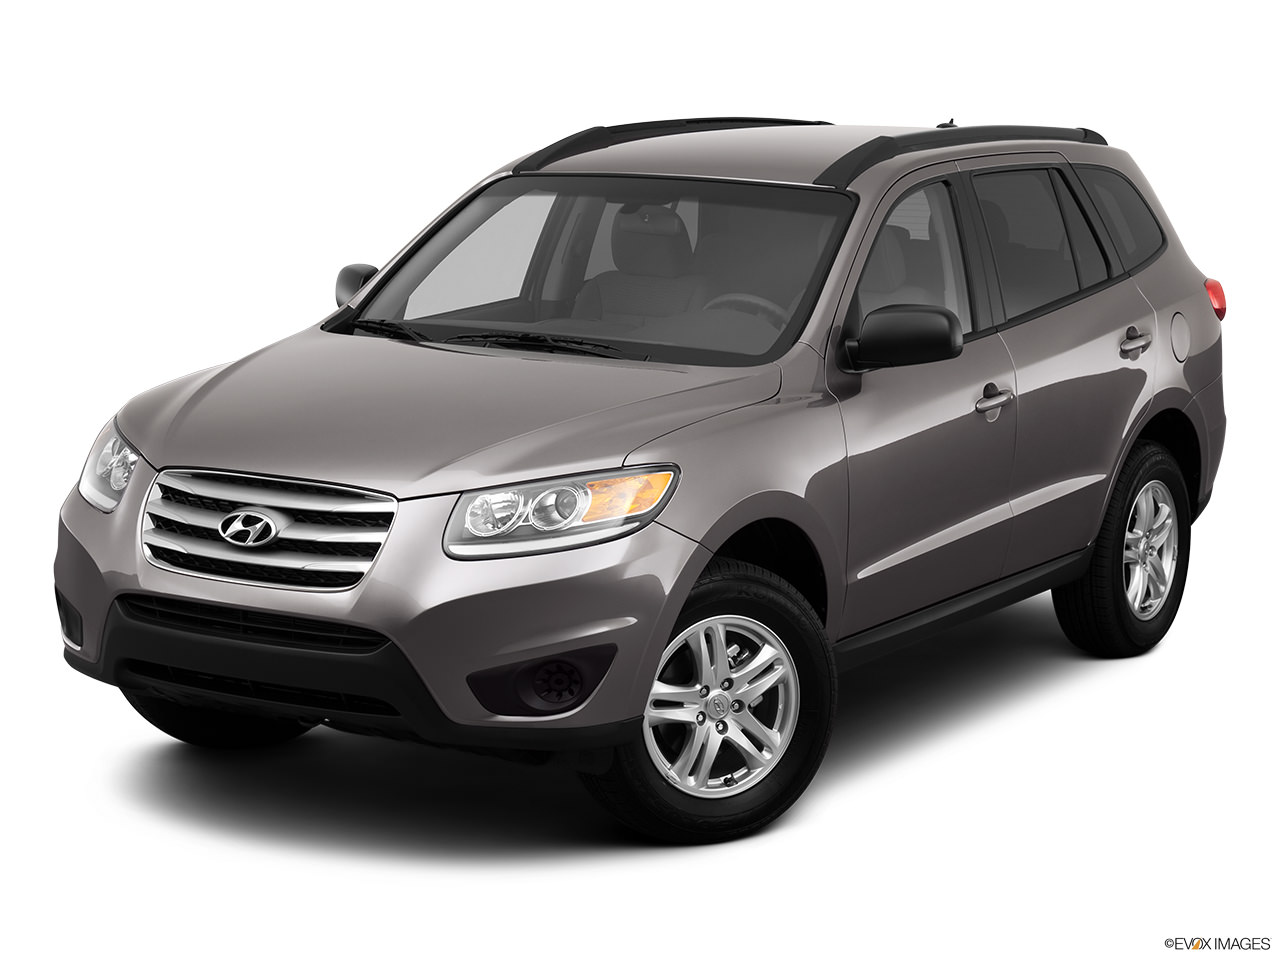 a buyer s guide to the 2012 hyundai santa fe yourmechanic advice rh yourmechanic com 2015 hyundai santa fe owners manual pdf 2015 hyundai santa fe owners manual